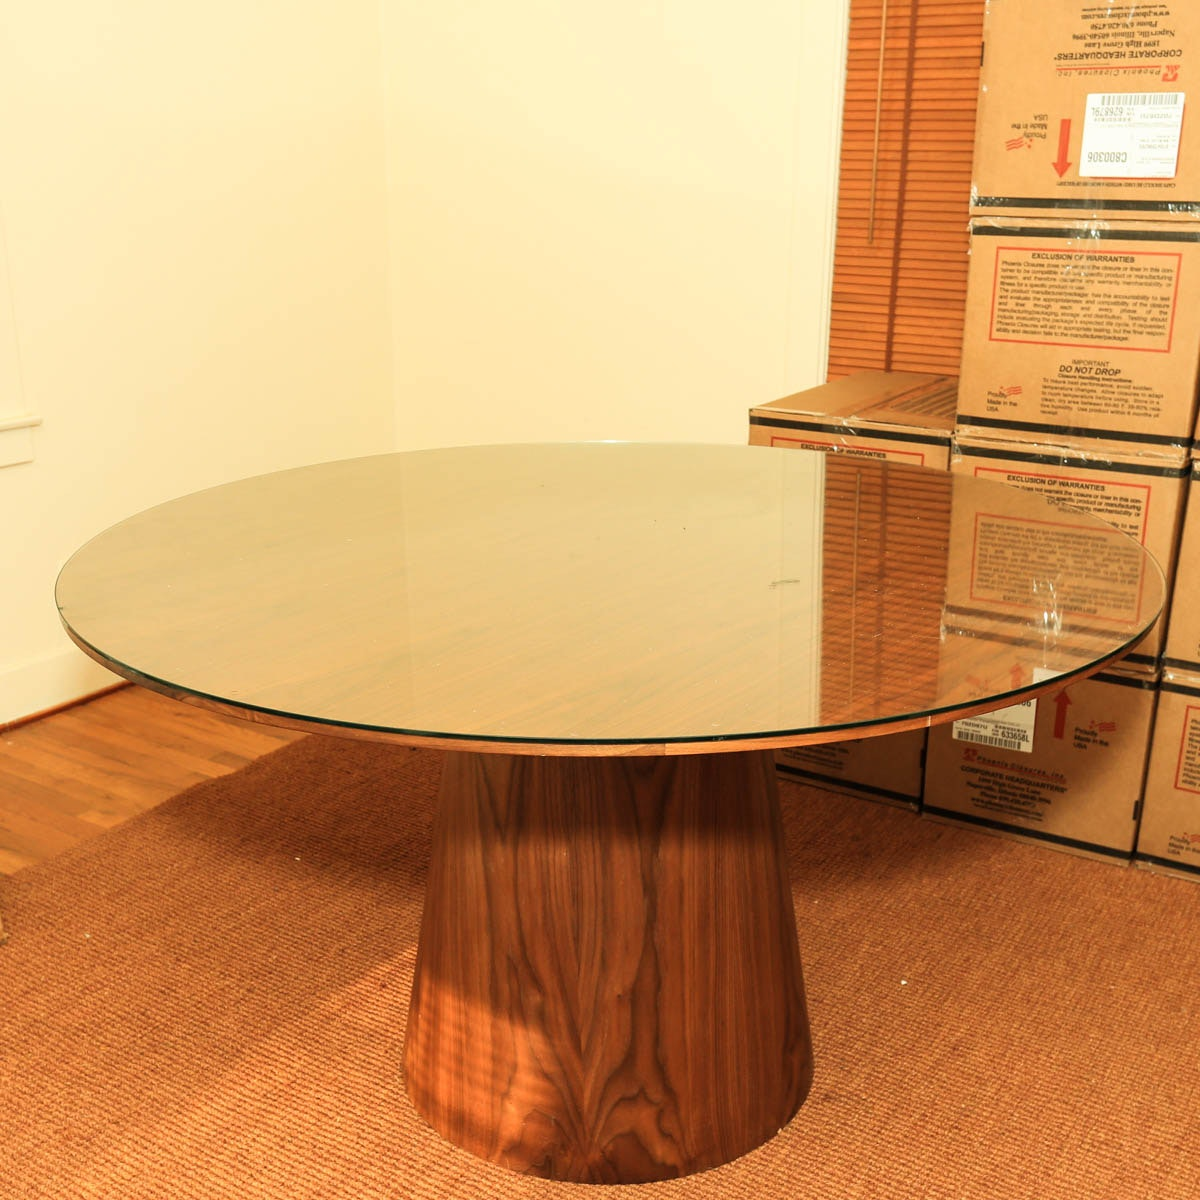 Late 20th to Early 21st Century Mushroom-Form Dining Table